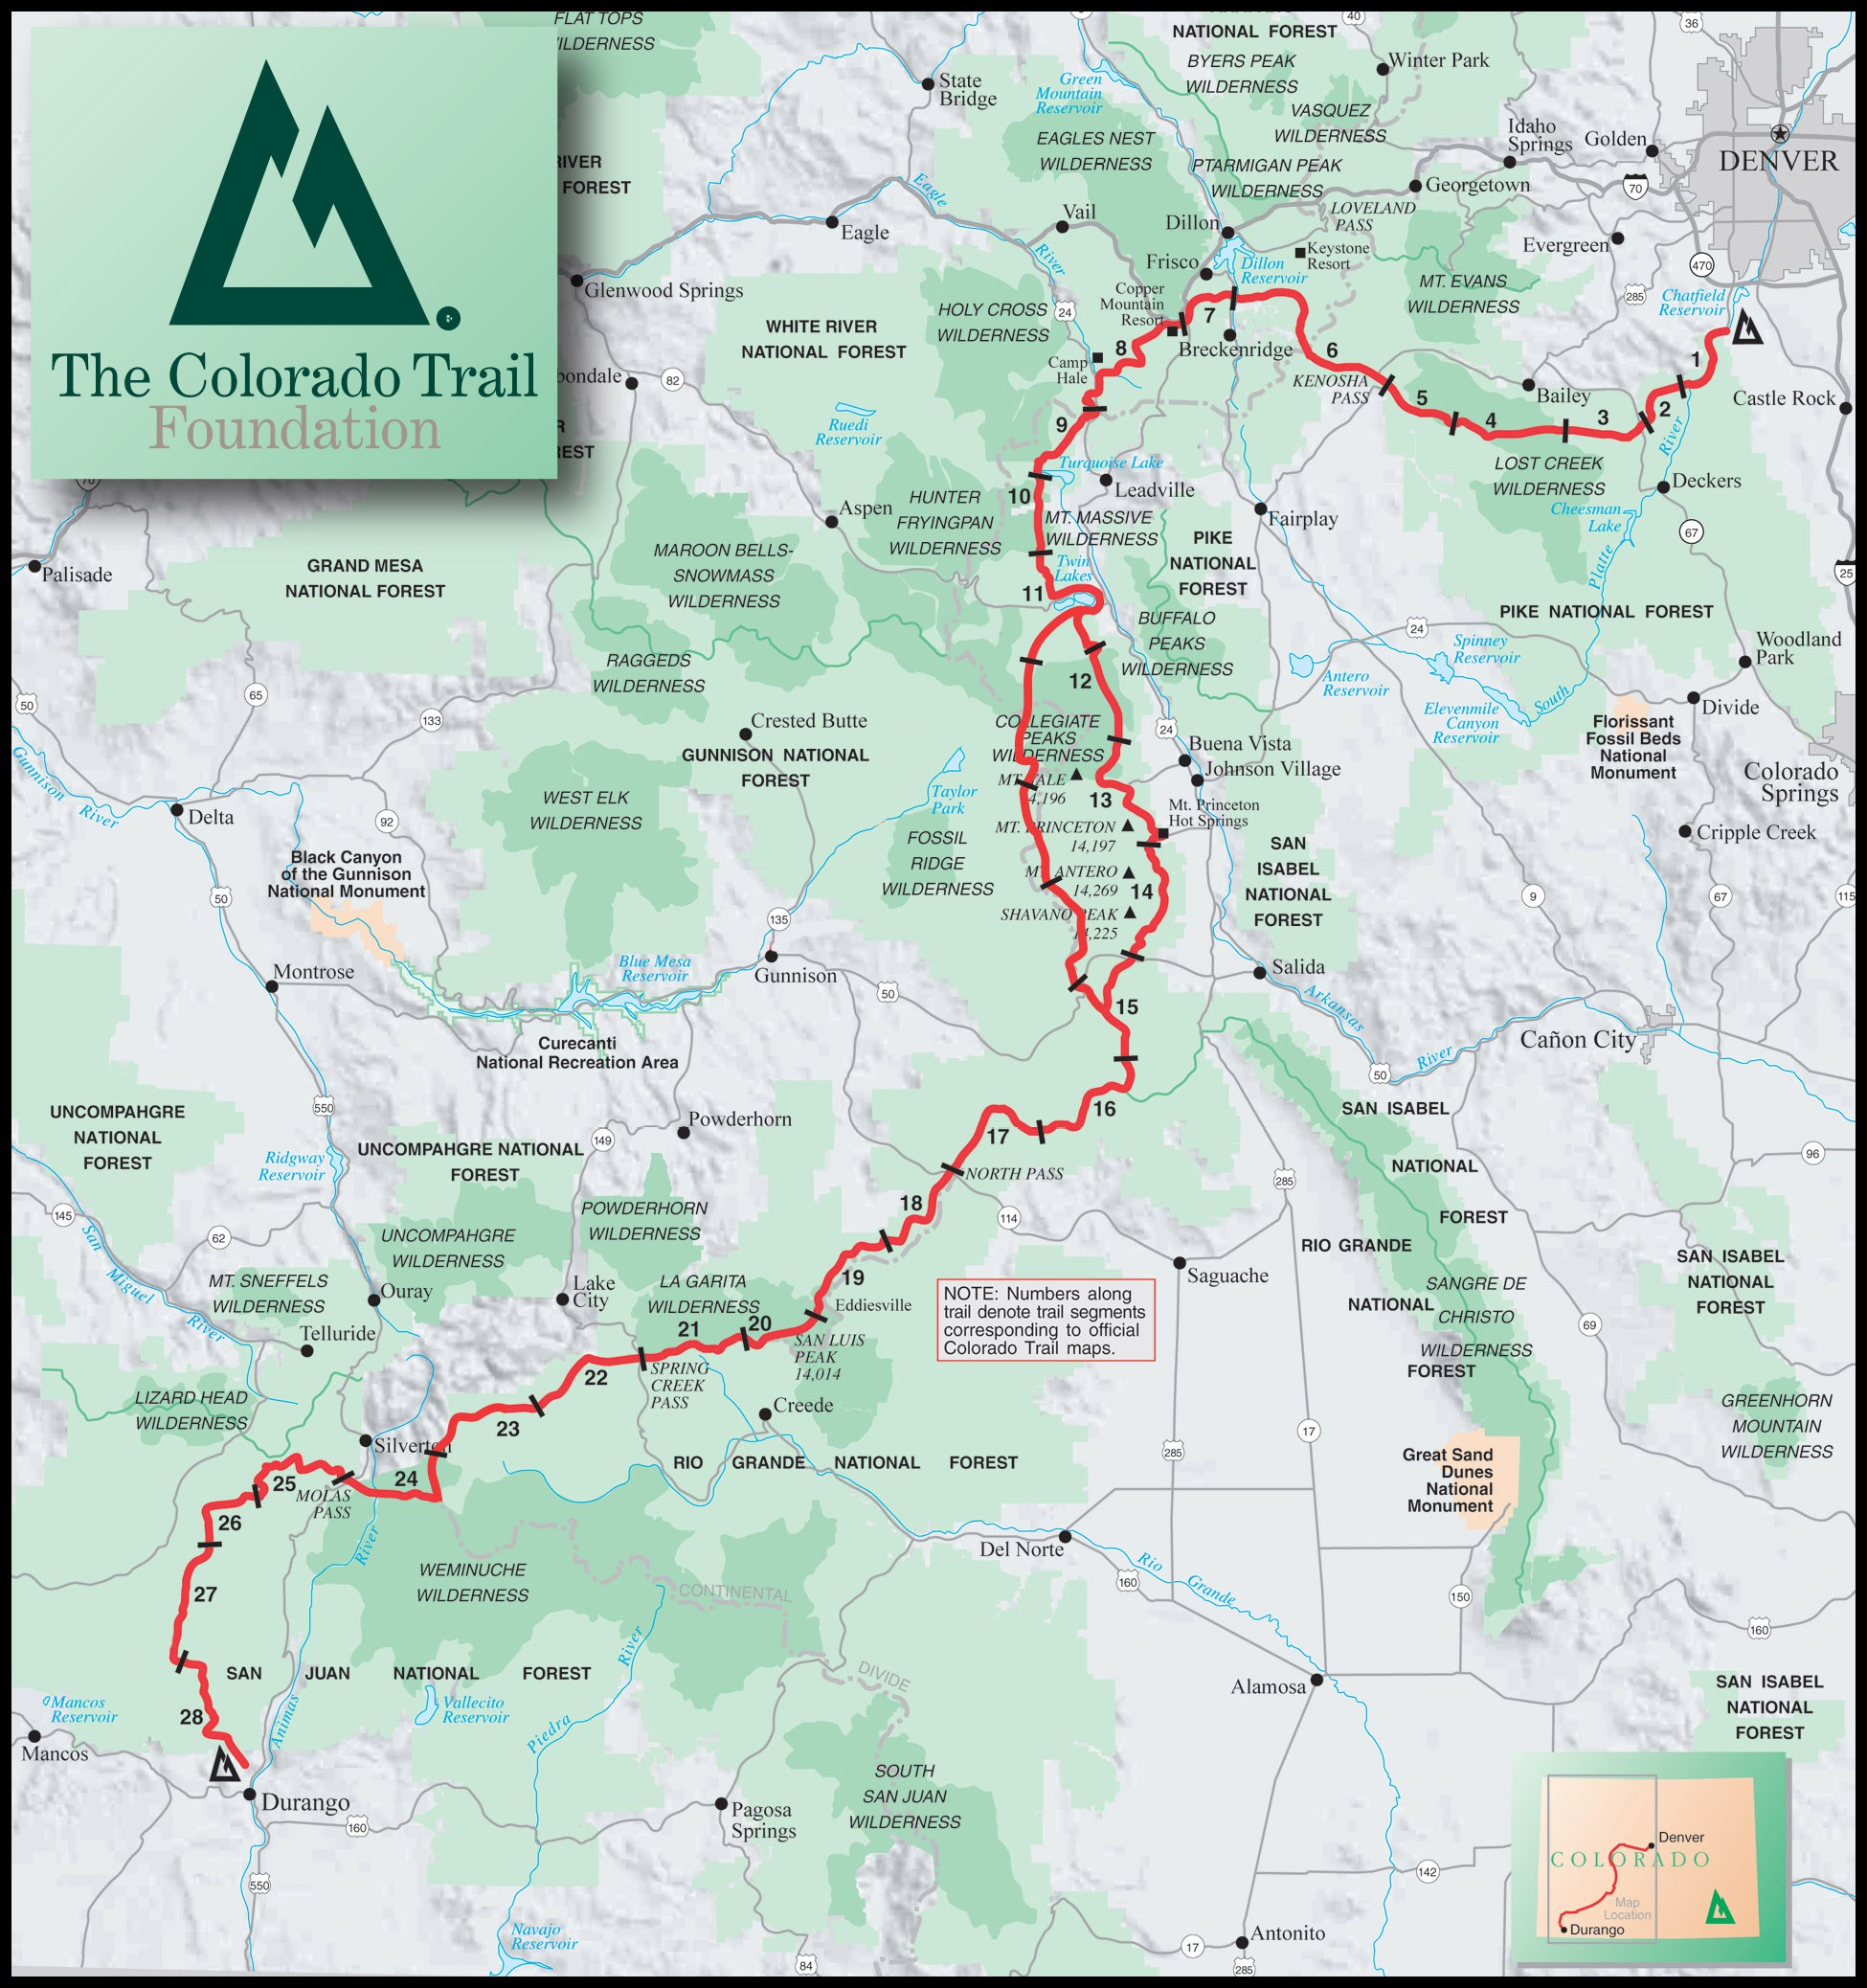 The Colorado Trail - 485 miles, Denver to Durango